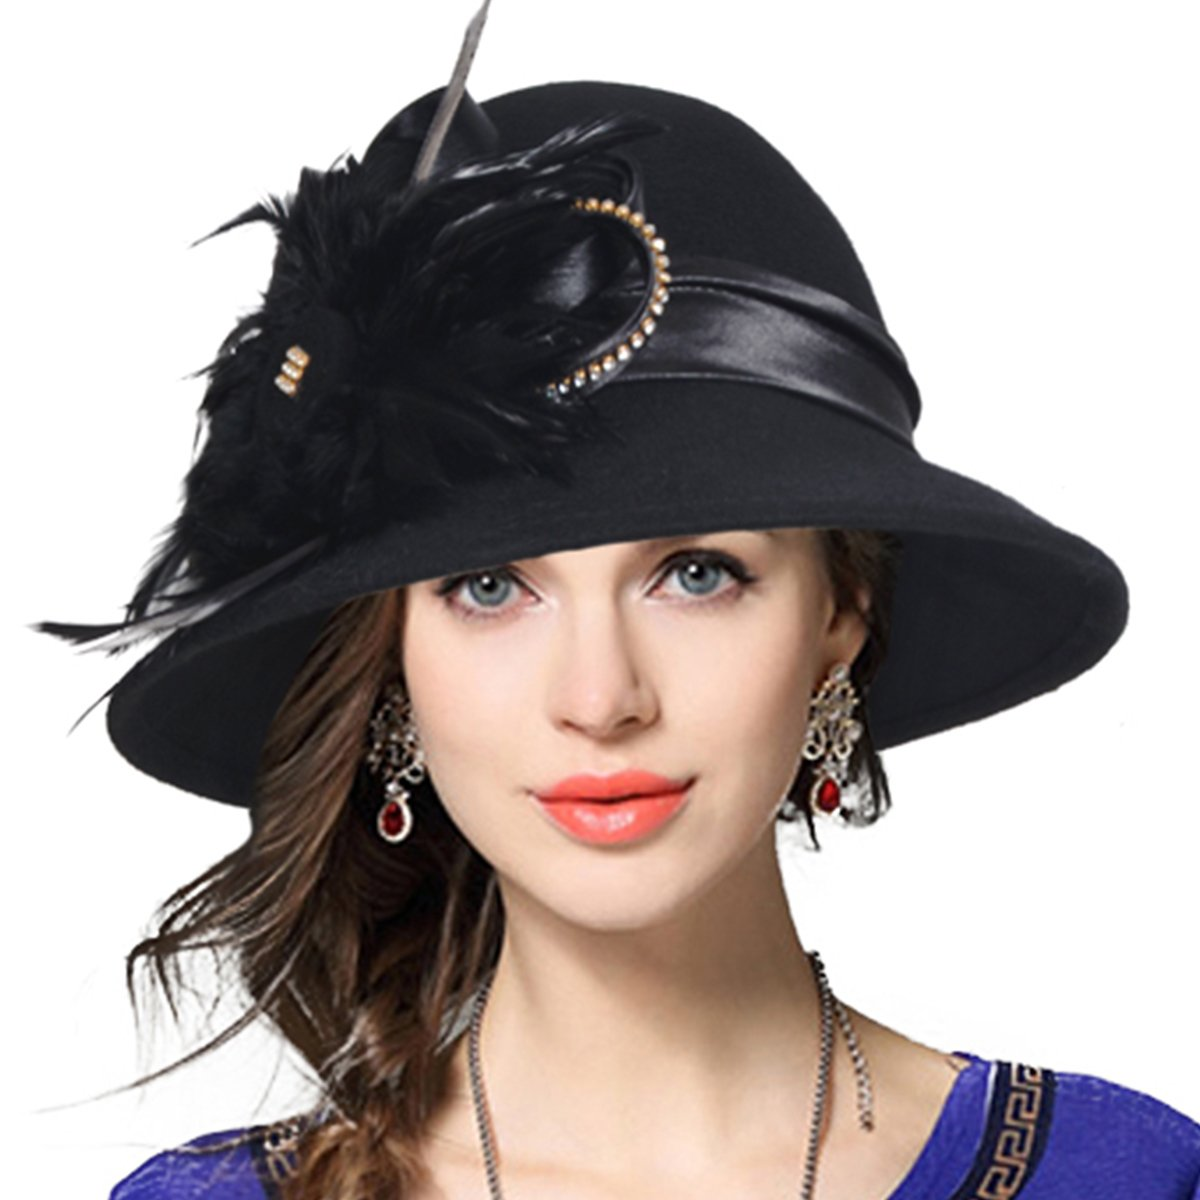 8 Easy 1920s Costumes You Can Make Womens Wool Church Dress Cloche Hat Plumy Felt Bucket Winter Hat $30.99 AT vintagedancer.com